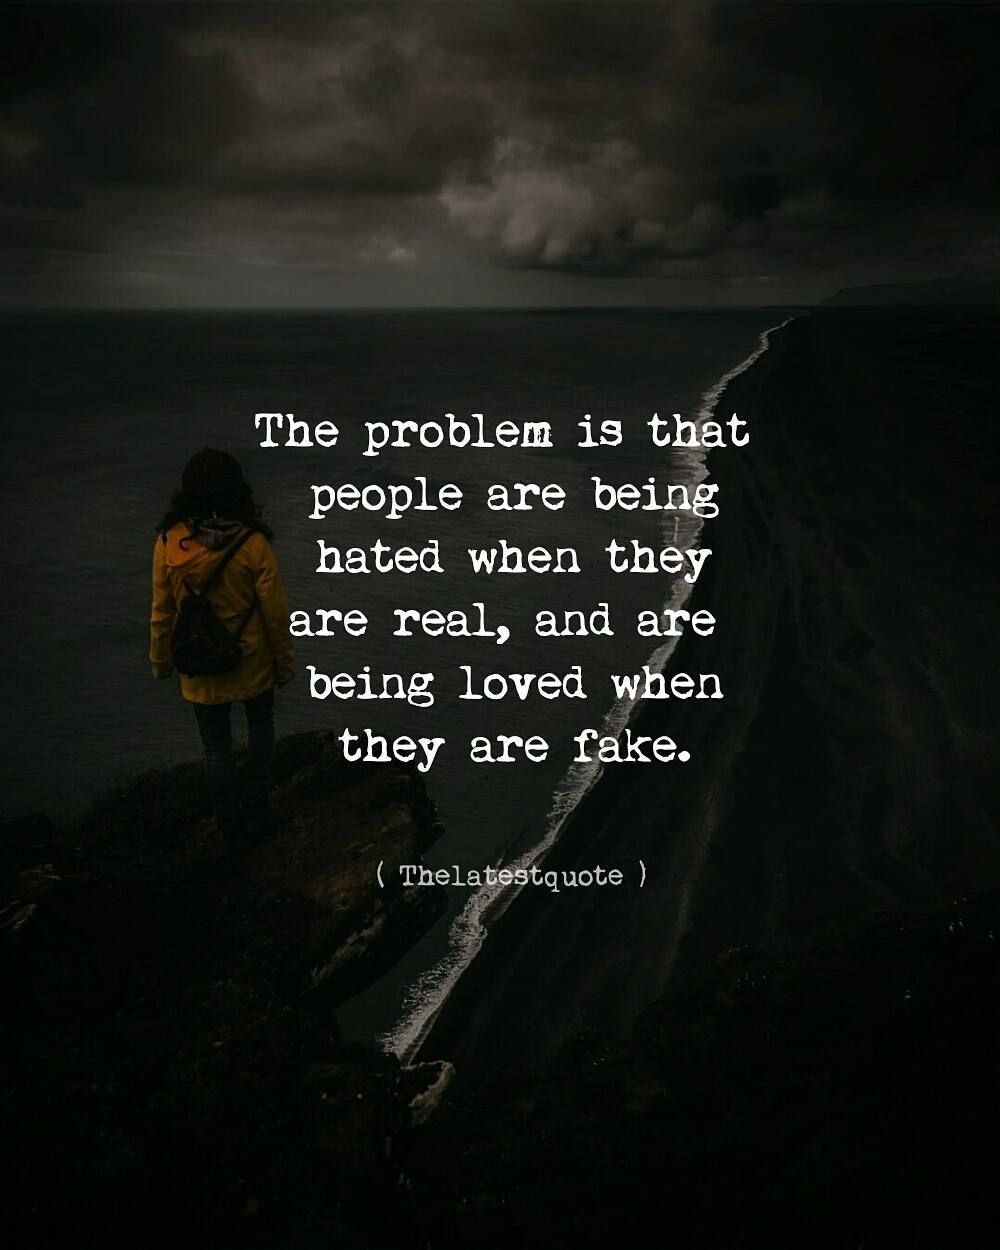 The Problem Is That People Are Being Hated When They Are Real And Are Being Loved When They Are Fake Daily Inspiration Quotes Fake Love Quotes Fake Quotes